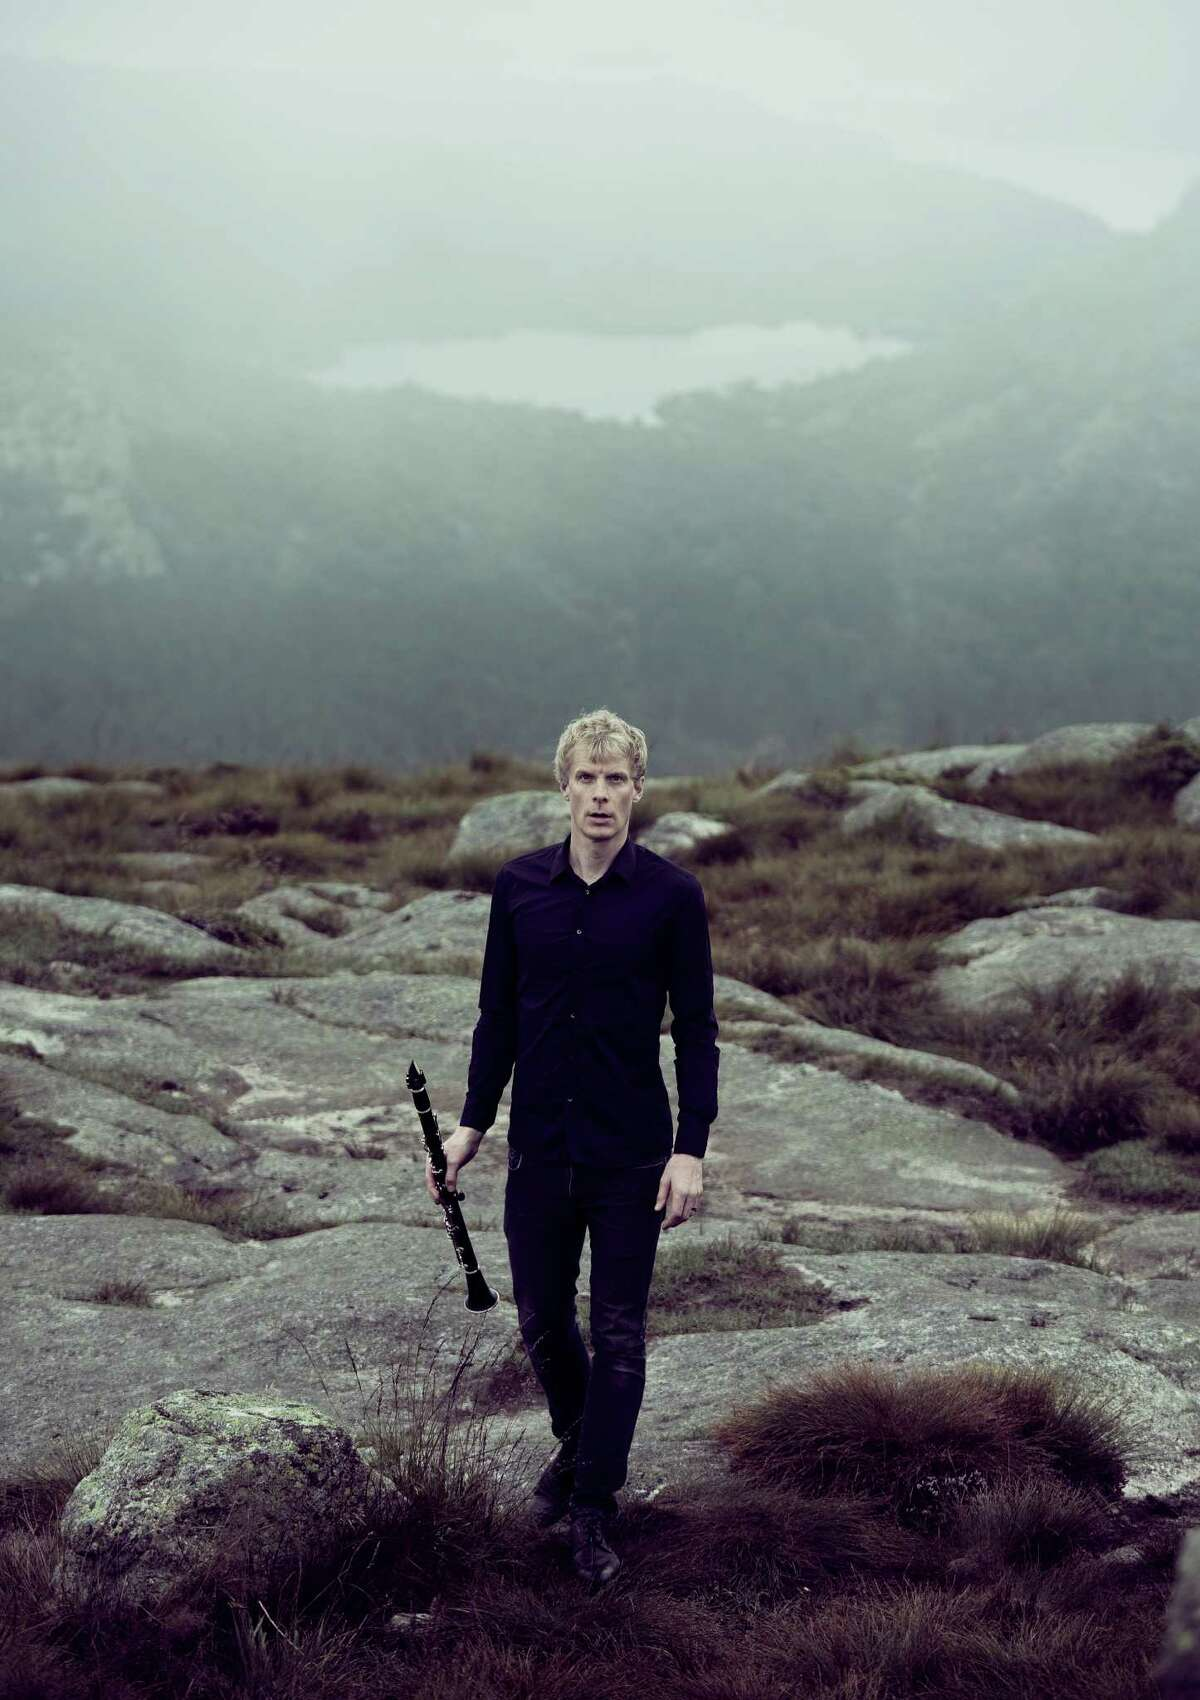 """Clarinetist Martin Fröst gave a transfixing performance of """"Peacock Tales,"""" Anders Hillborg's clarinet concerto from 1997-98, with the St. Paul Chamber Orchestra in Berkeley."""